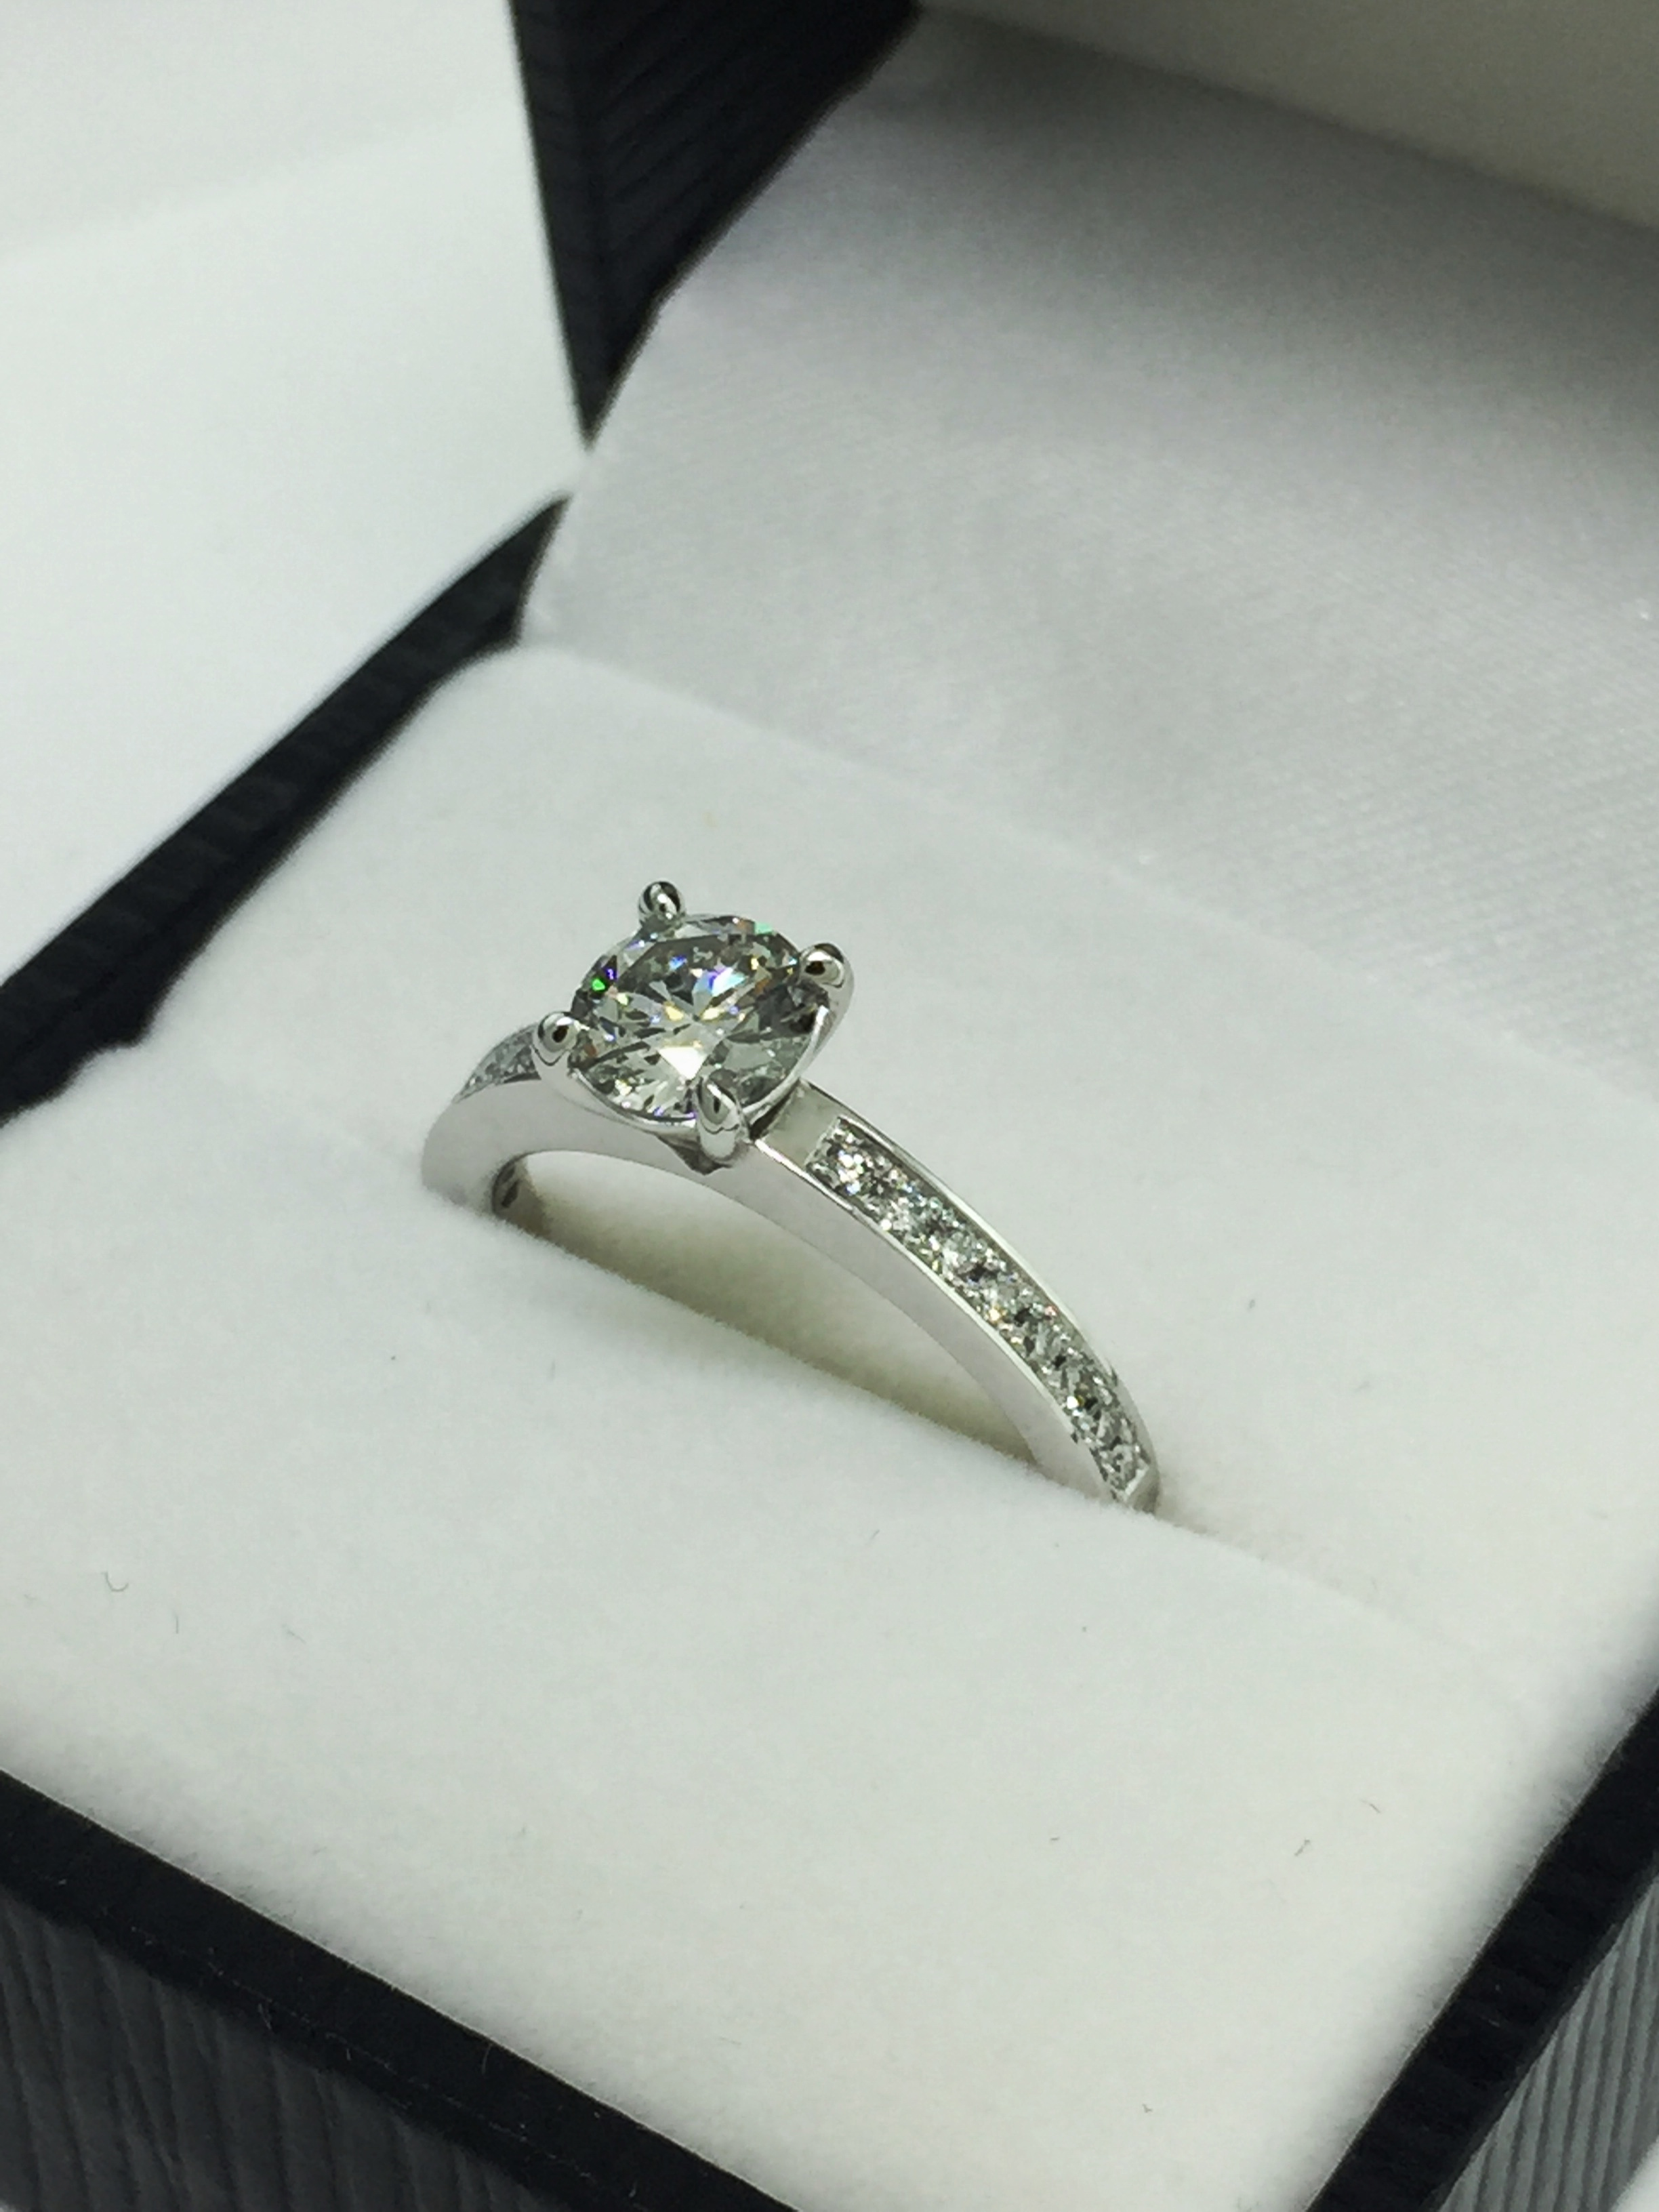 The finish piece, 18 carat white gold and platinum engagement ring with 1.00ct brilliant cut diamond.